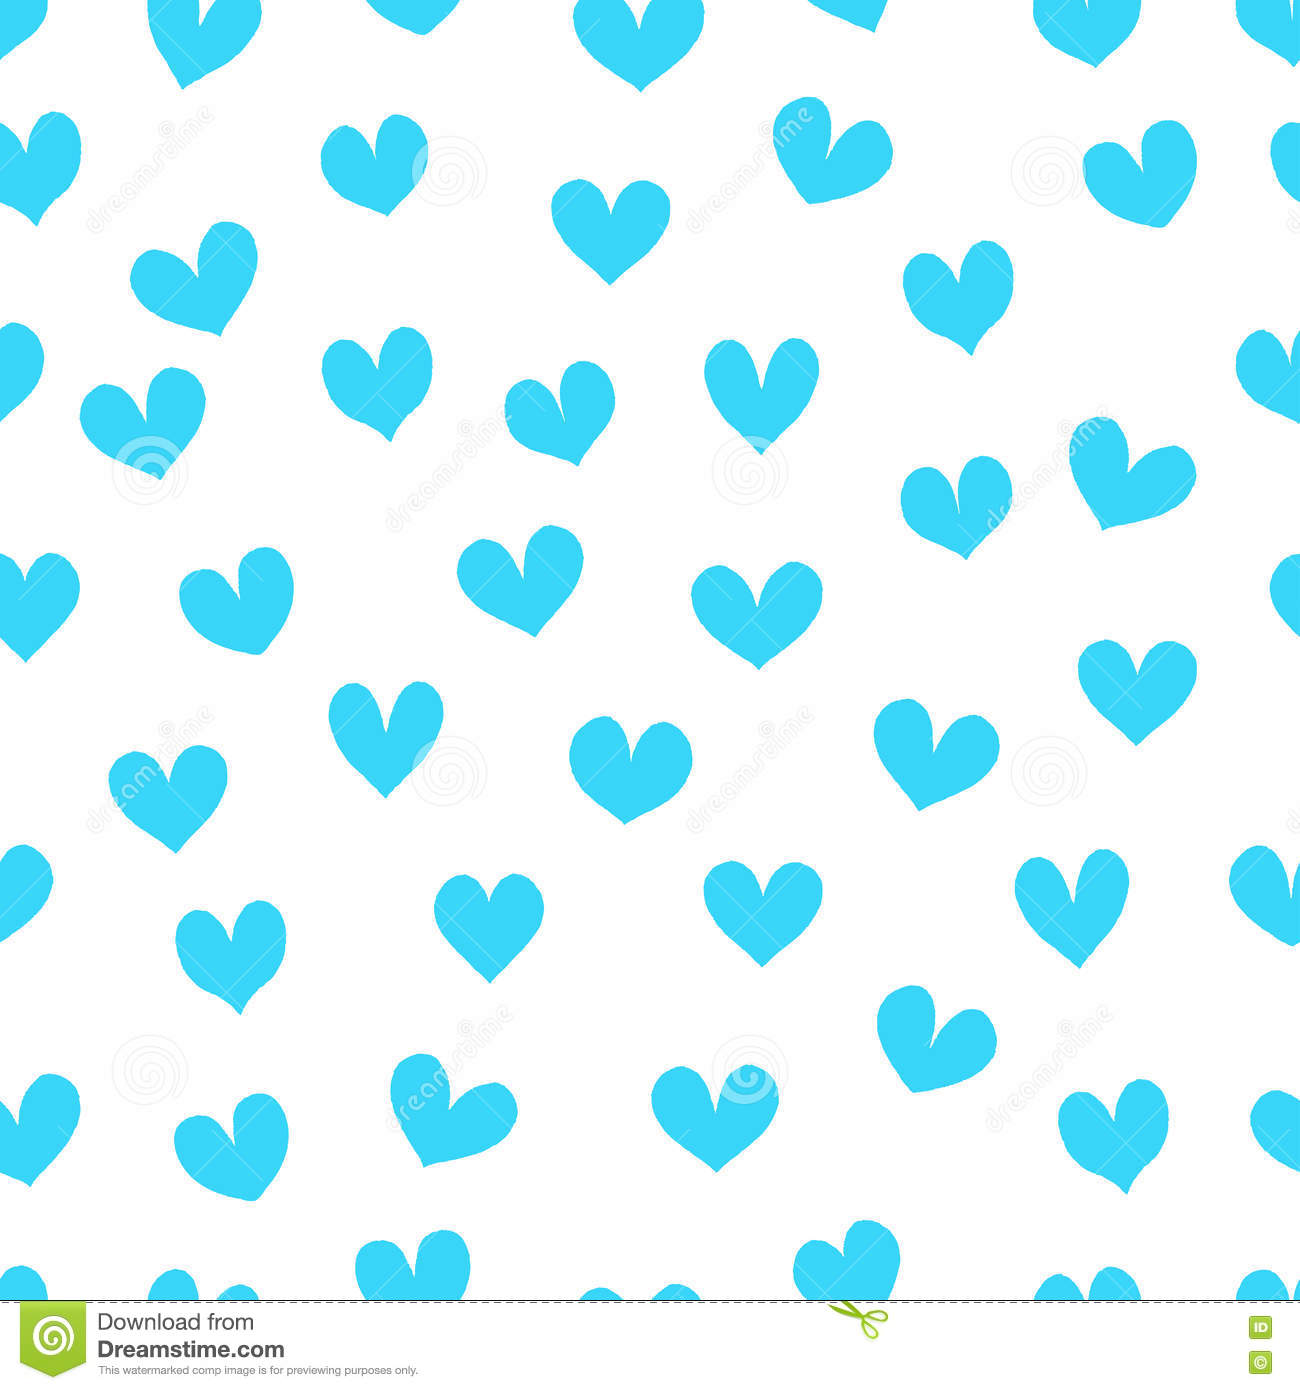 Blue heart dating site